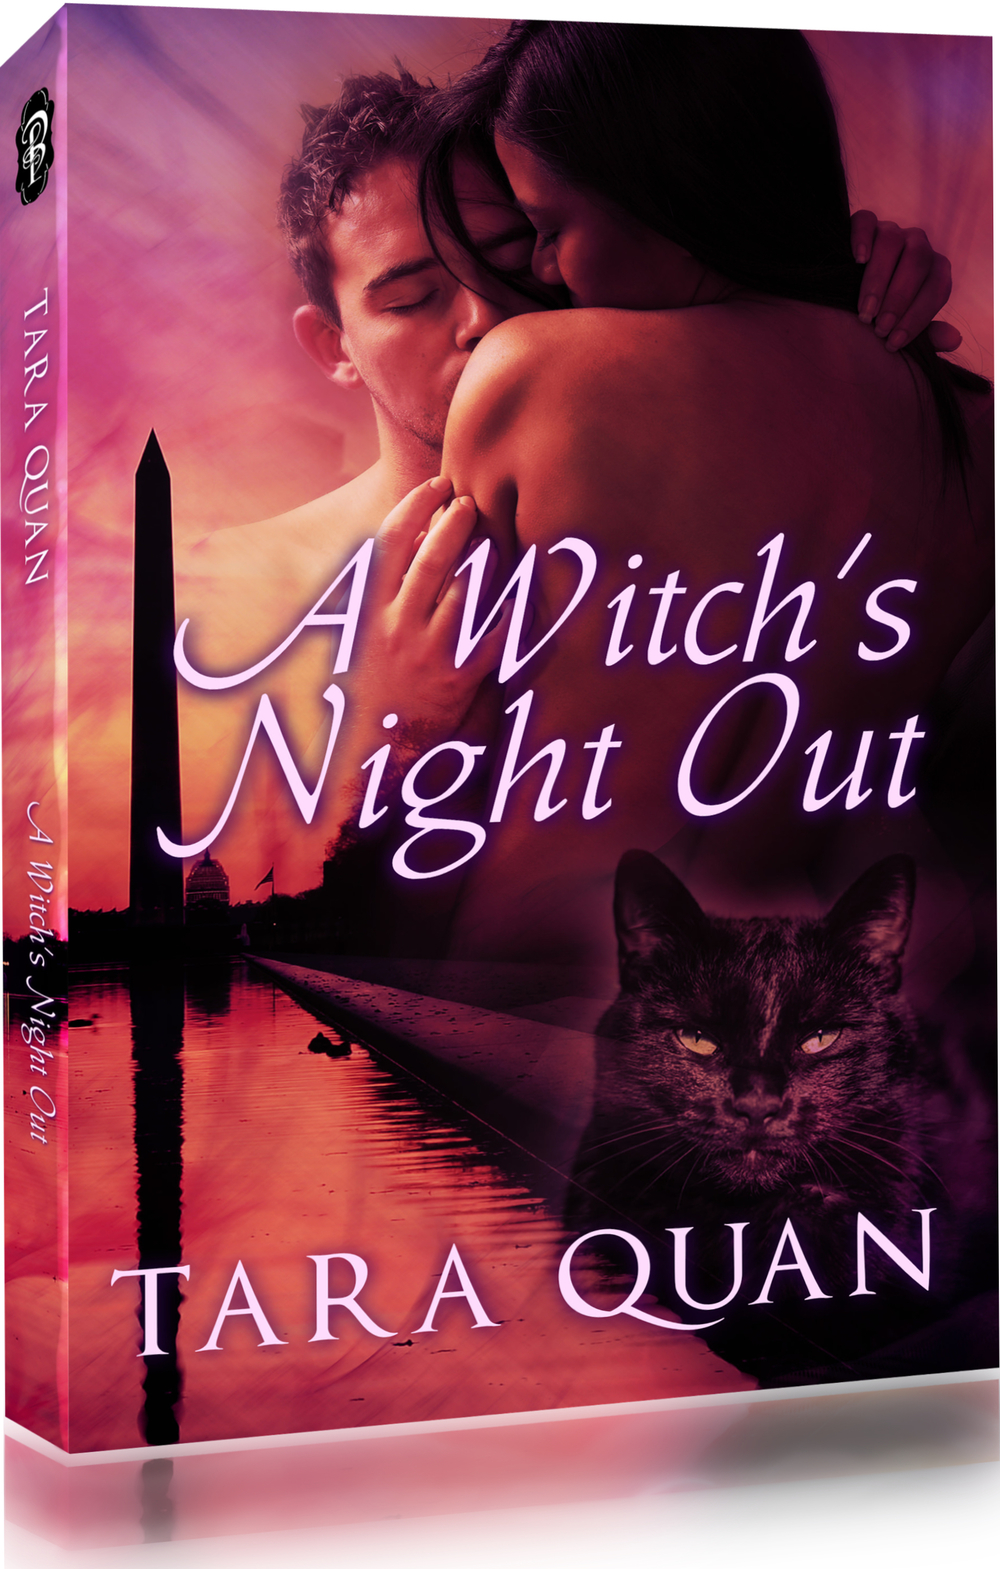 A Witch's Night Out by Tara Quan